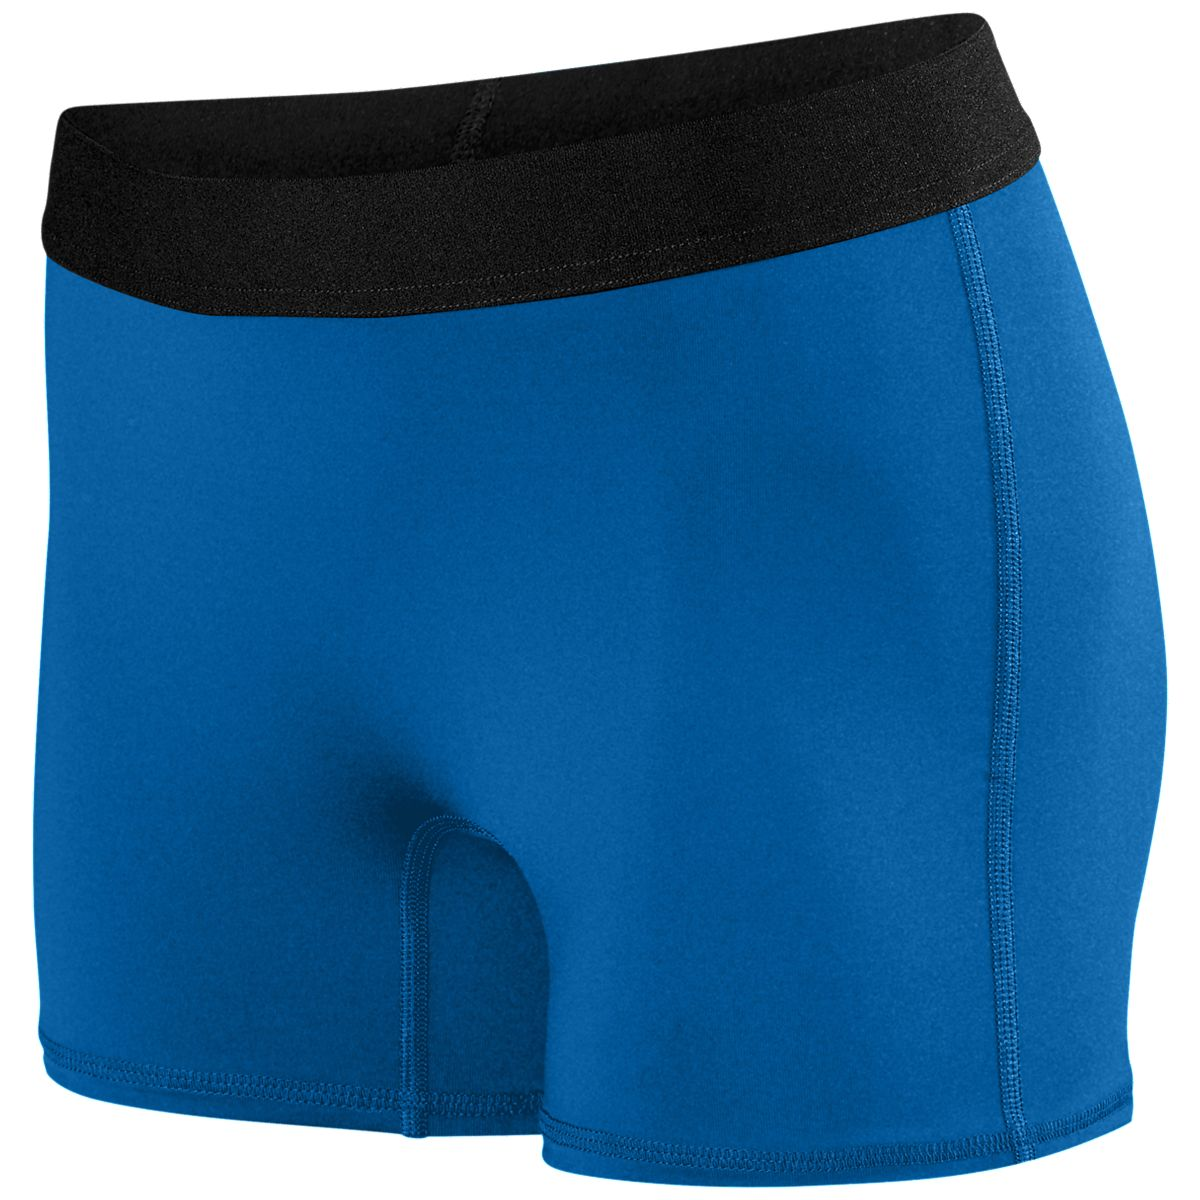 Augusta Ladies Hyperform Fitted Short Royal Xs - image 1 of 1